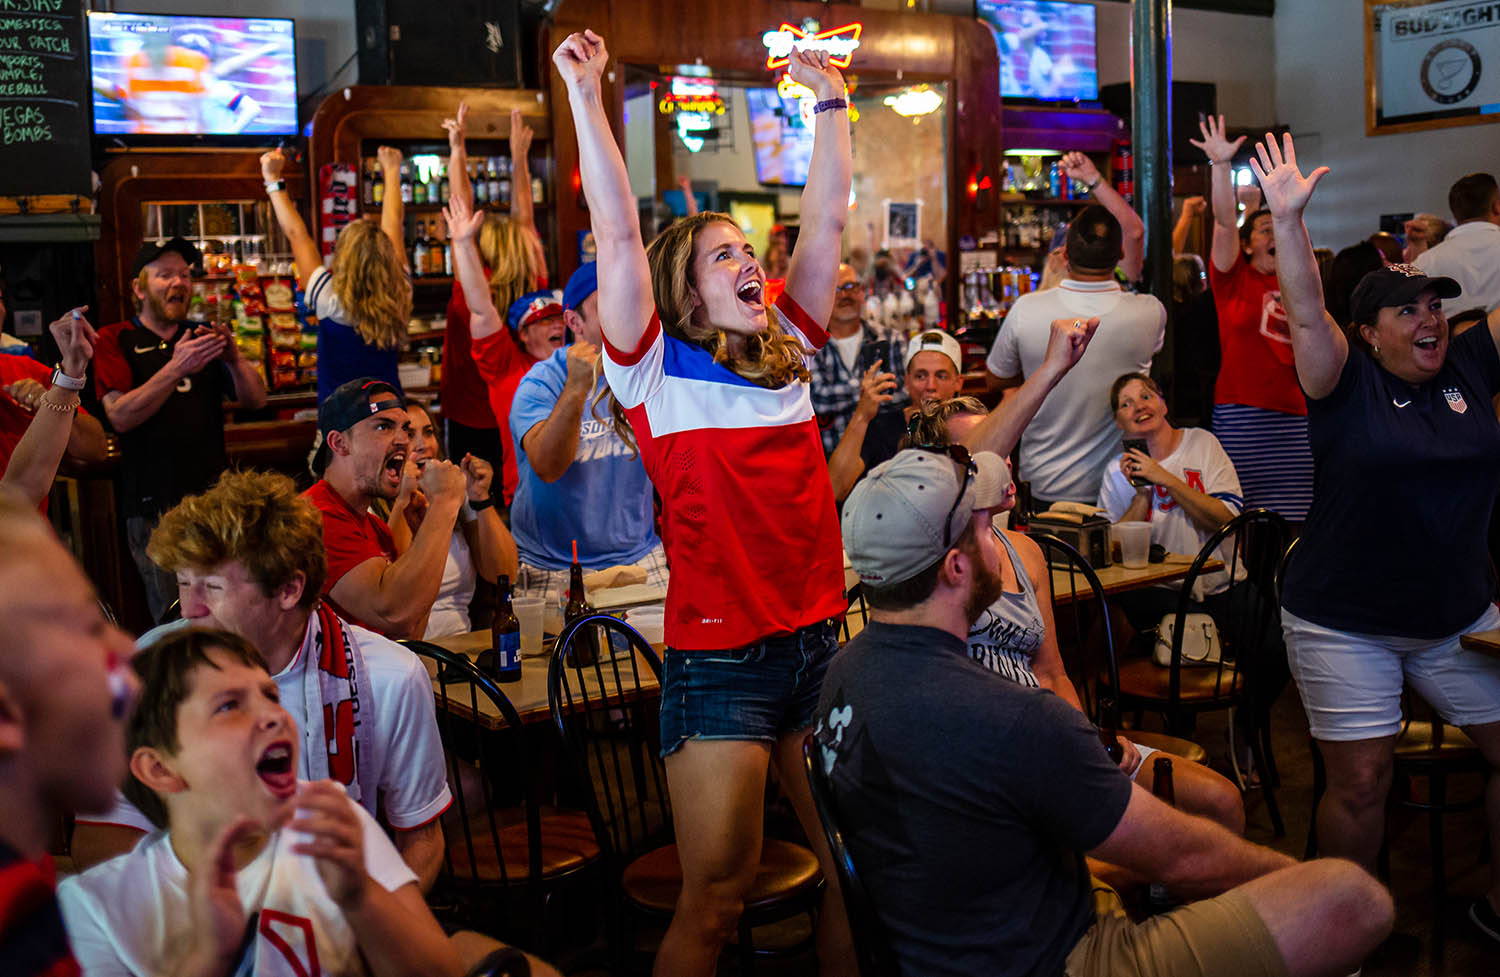 "Missy Gee, center, celebrates a penalty kick goal by United States' Megan Rapinoe to put the USA up 1-0 over the Netherlands in the Women's World Cut final during a watch party hosted by the American Outlaws Land of Lincoln chapter at The Alamo, Sunday, July 7, 2019, in Springfield, Ill. ""It's awesome, It's so inspiring to see these women out here and do so great and inspiring a nation,"" said Gee who played soccer at Springfield High School and Eastern Illinois University. [Justin L. Fowler/The State Journal-Register]"